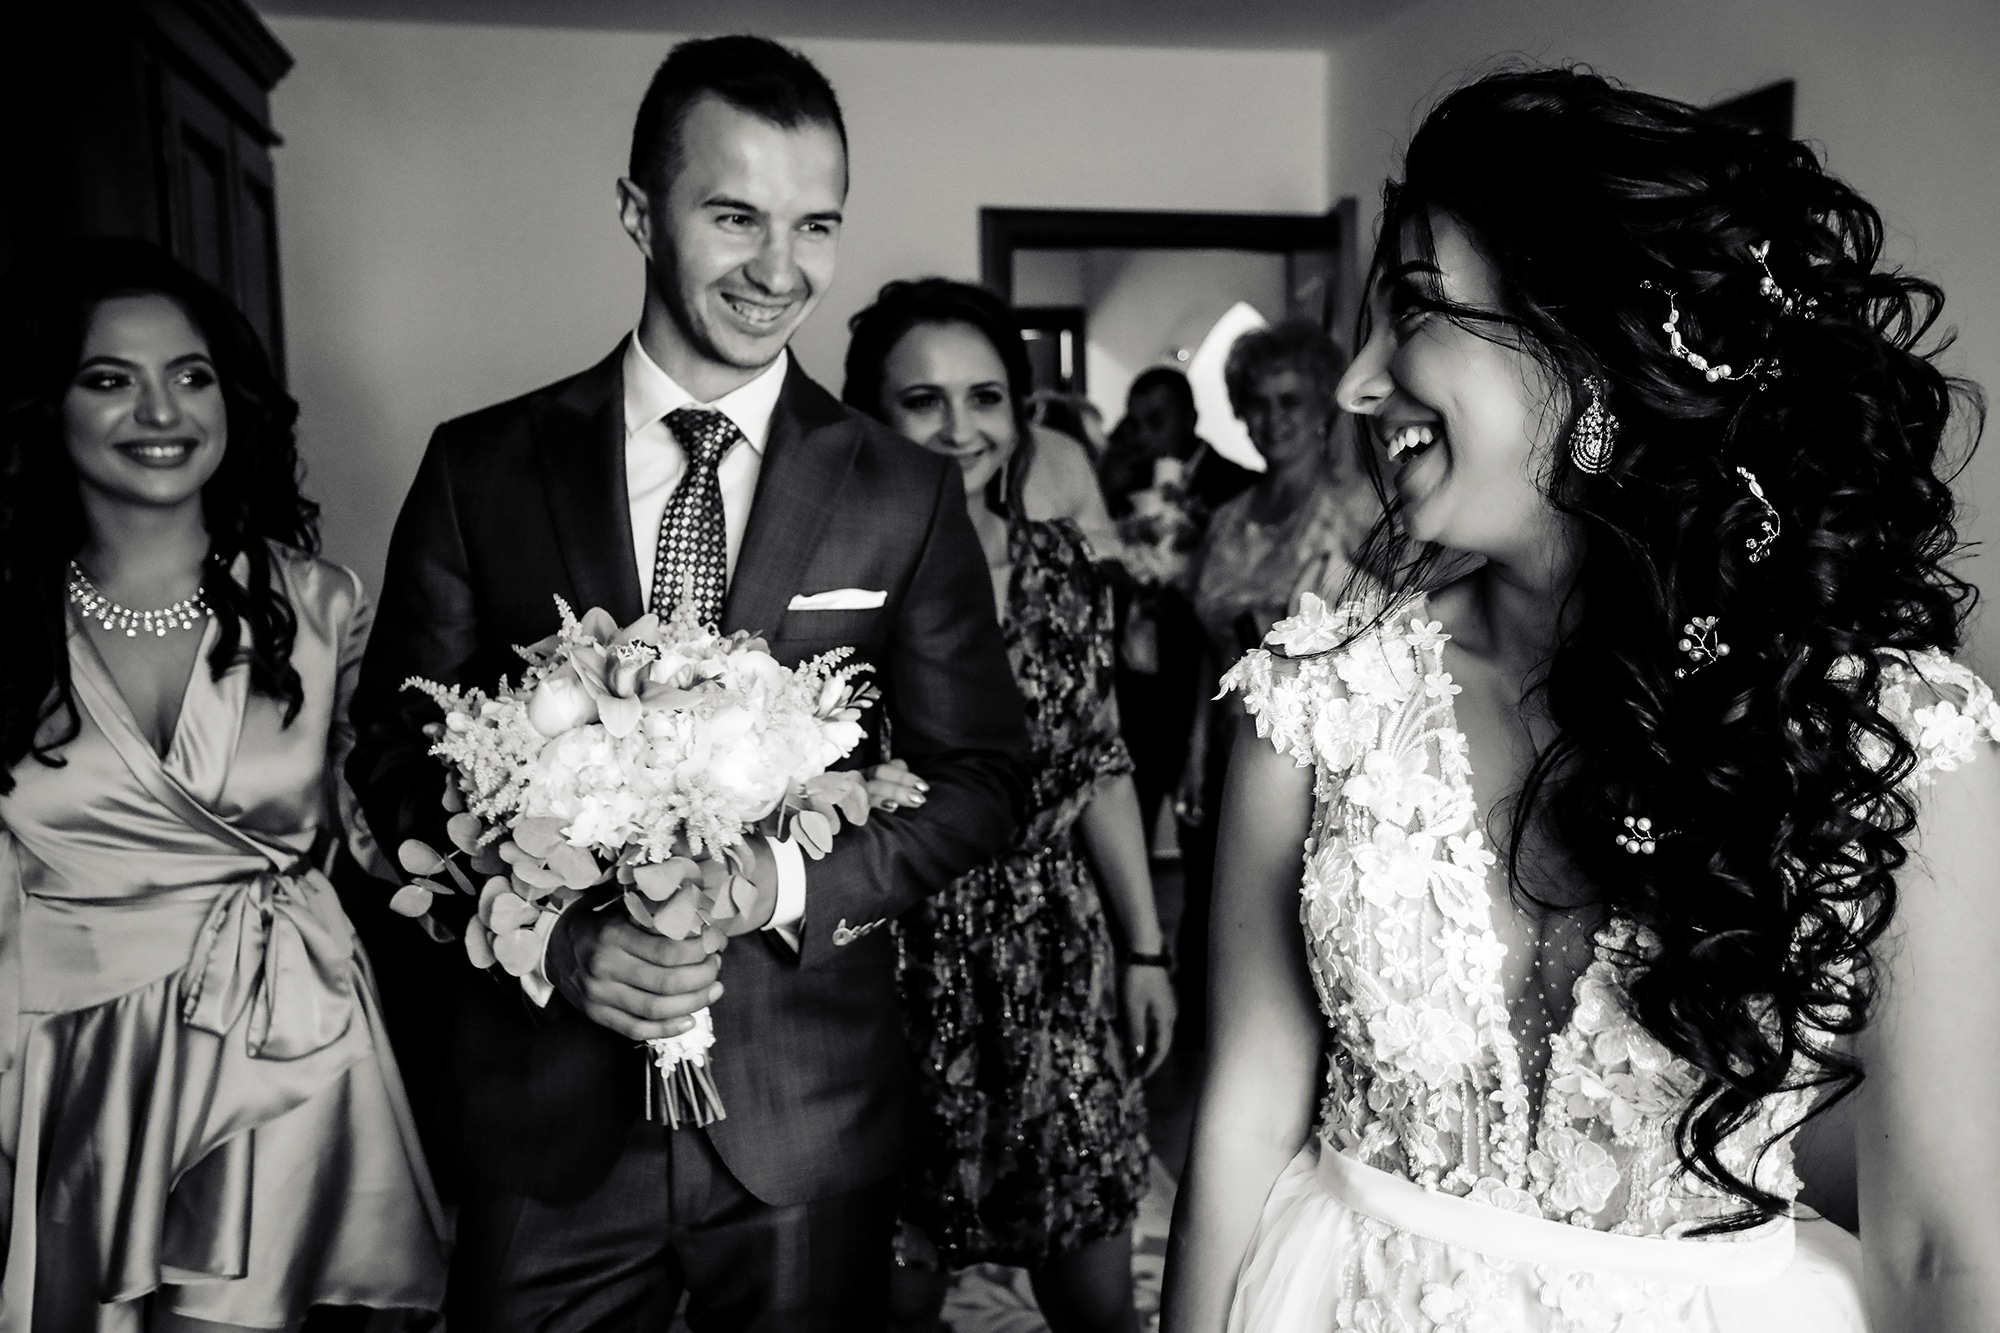 fotograf_nunta_suceava_romania_wedding_photographer_europe-(15)